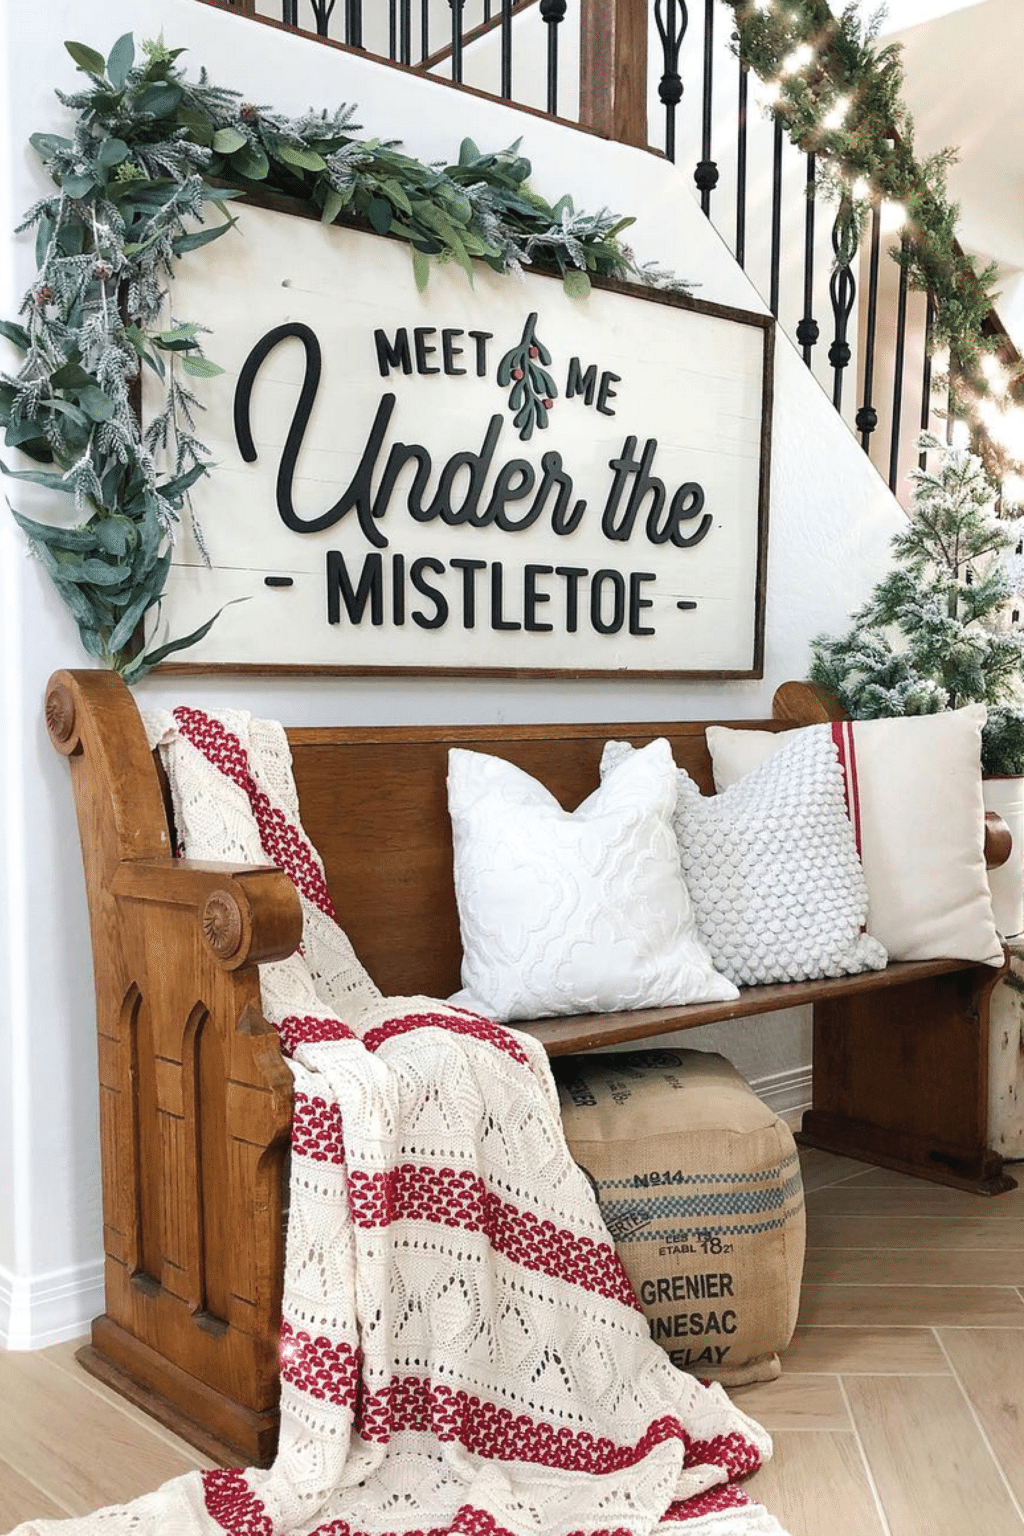 The Best Farmhouse Christmas Decor Inspiration - A huge collection of Farmhouse Christmas Decor inspiration that is completely on-trend, showcasing neutral color palettes with natural materials. #farmhousedecor #christmasdecor #farmhouse #farmhousechristmas #holidayfarmhouse #christmasfarmhousedecor #christmasdecoratingideas #xmasfarmhouse #holidaydecorations #christmasporch #holidaydecor #diychristmasdecor #christmasgarland #christmastabledecor #christmasdecorations #farmhousexmas #neutralchris